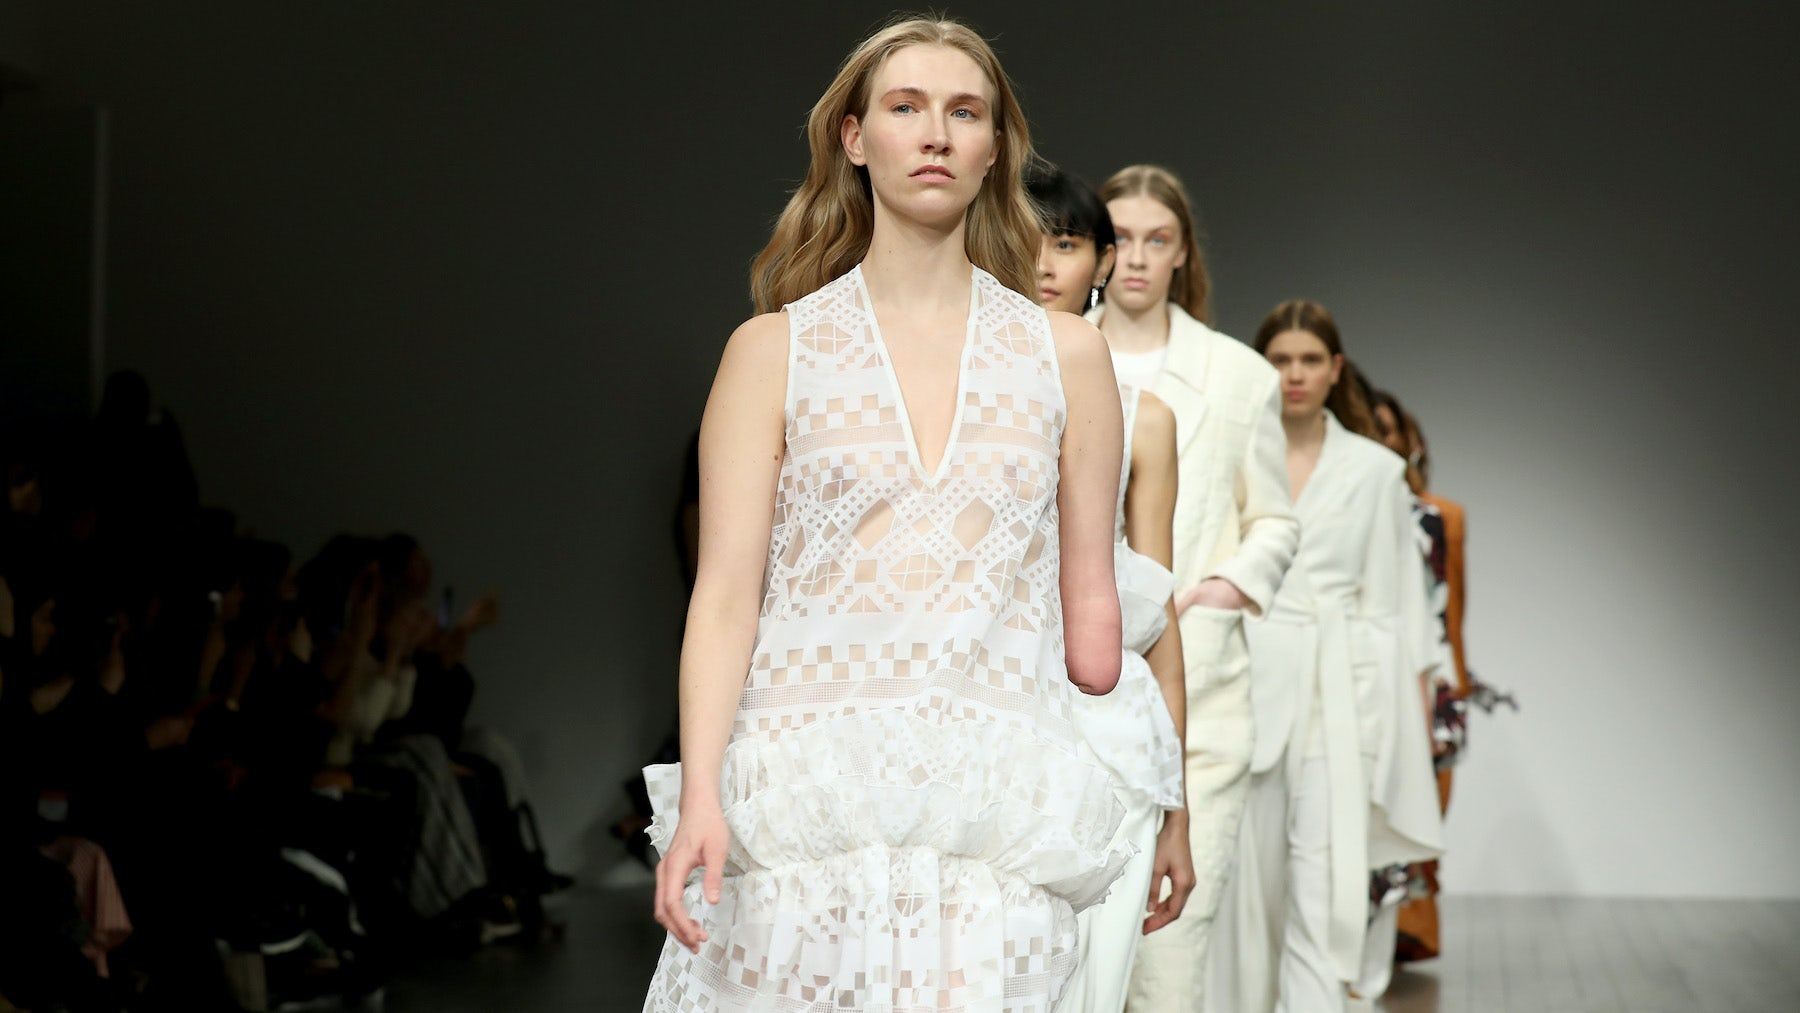 Kelly Knox was one of the models to walk the runway at the Teatum Jones' Spring 2018 show during London Fashion Week | Source: Getty